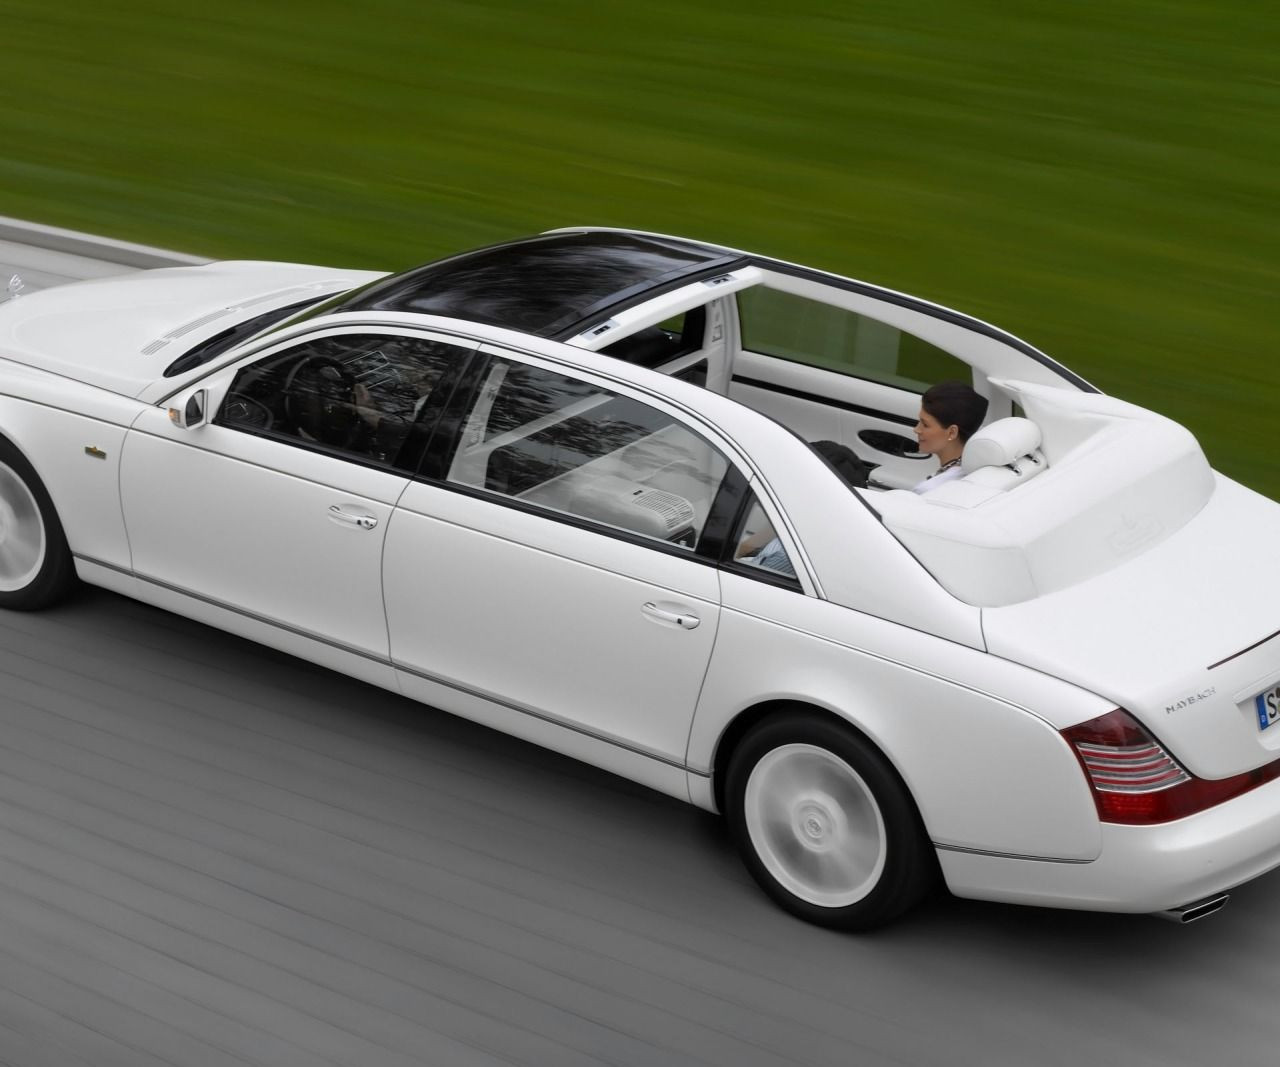 Limited to only 8 units, the Maybach Landaulet was one of the most expensive automobiles at the time with a price set at $1.35M